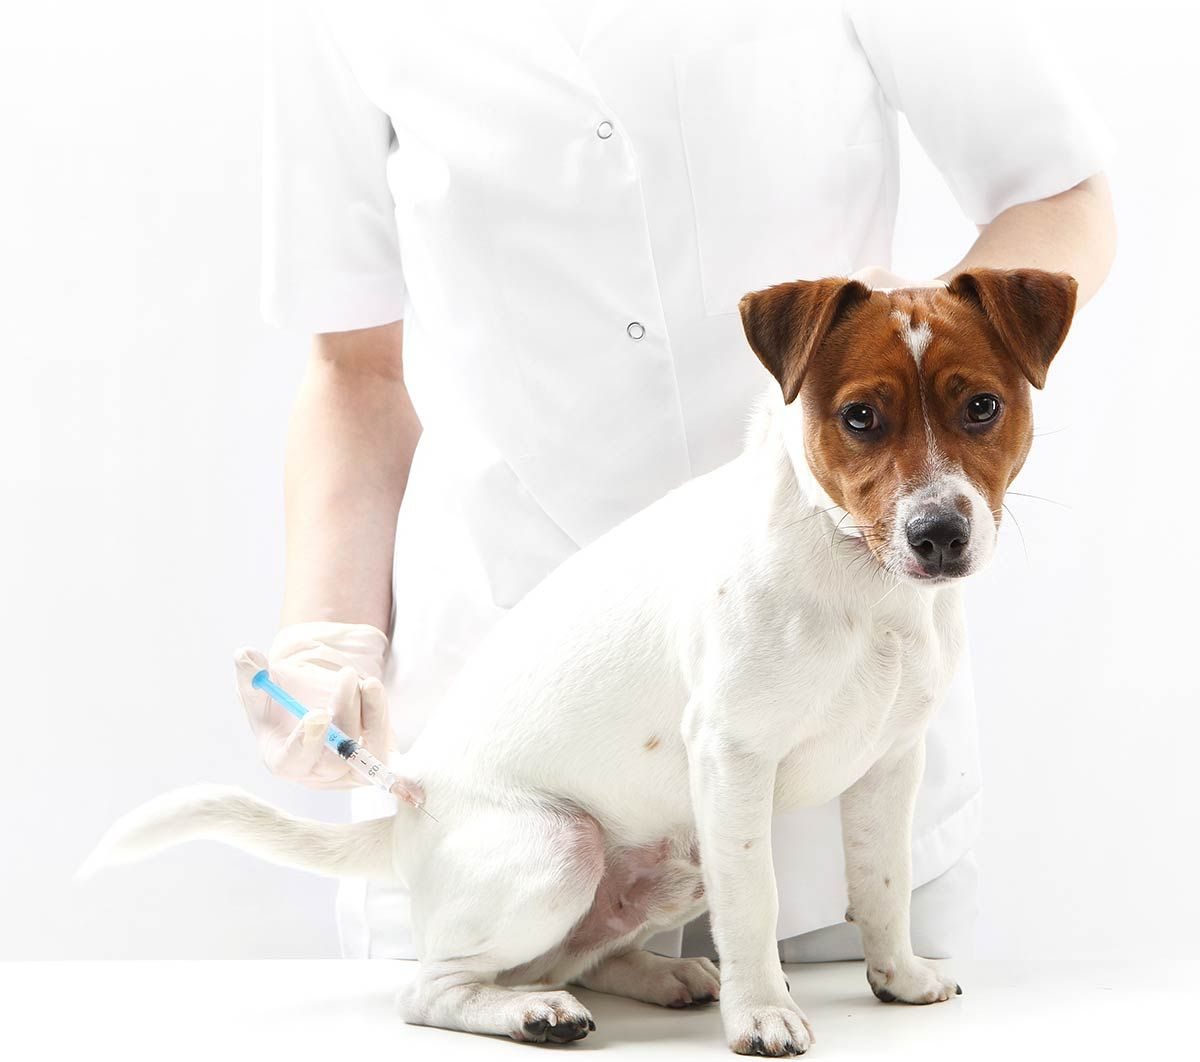 Pin about Veterinary services and Surgery on Pet Microchip